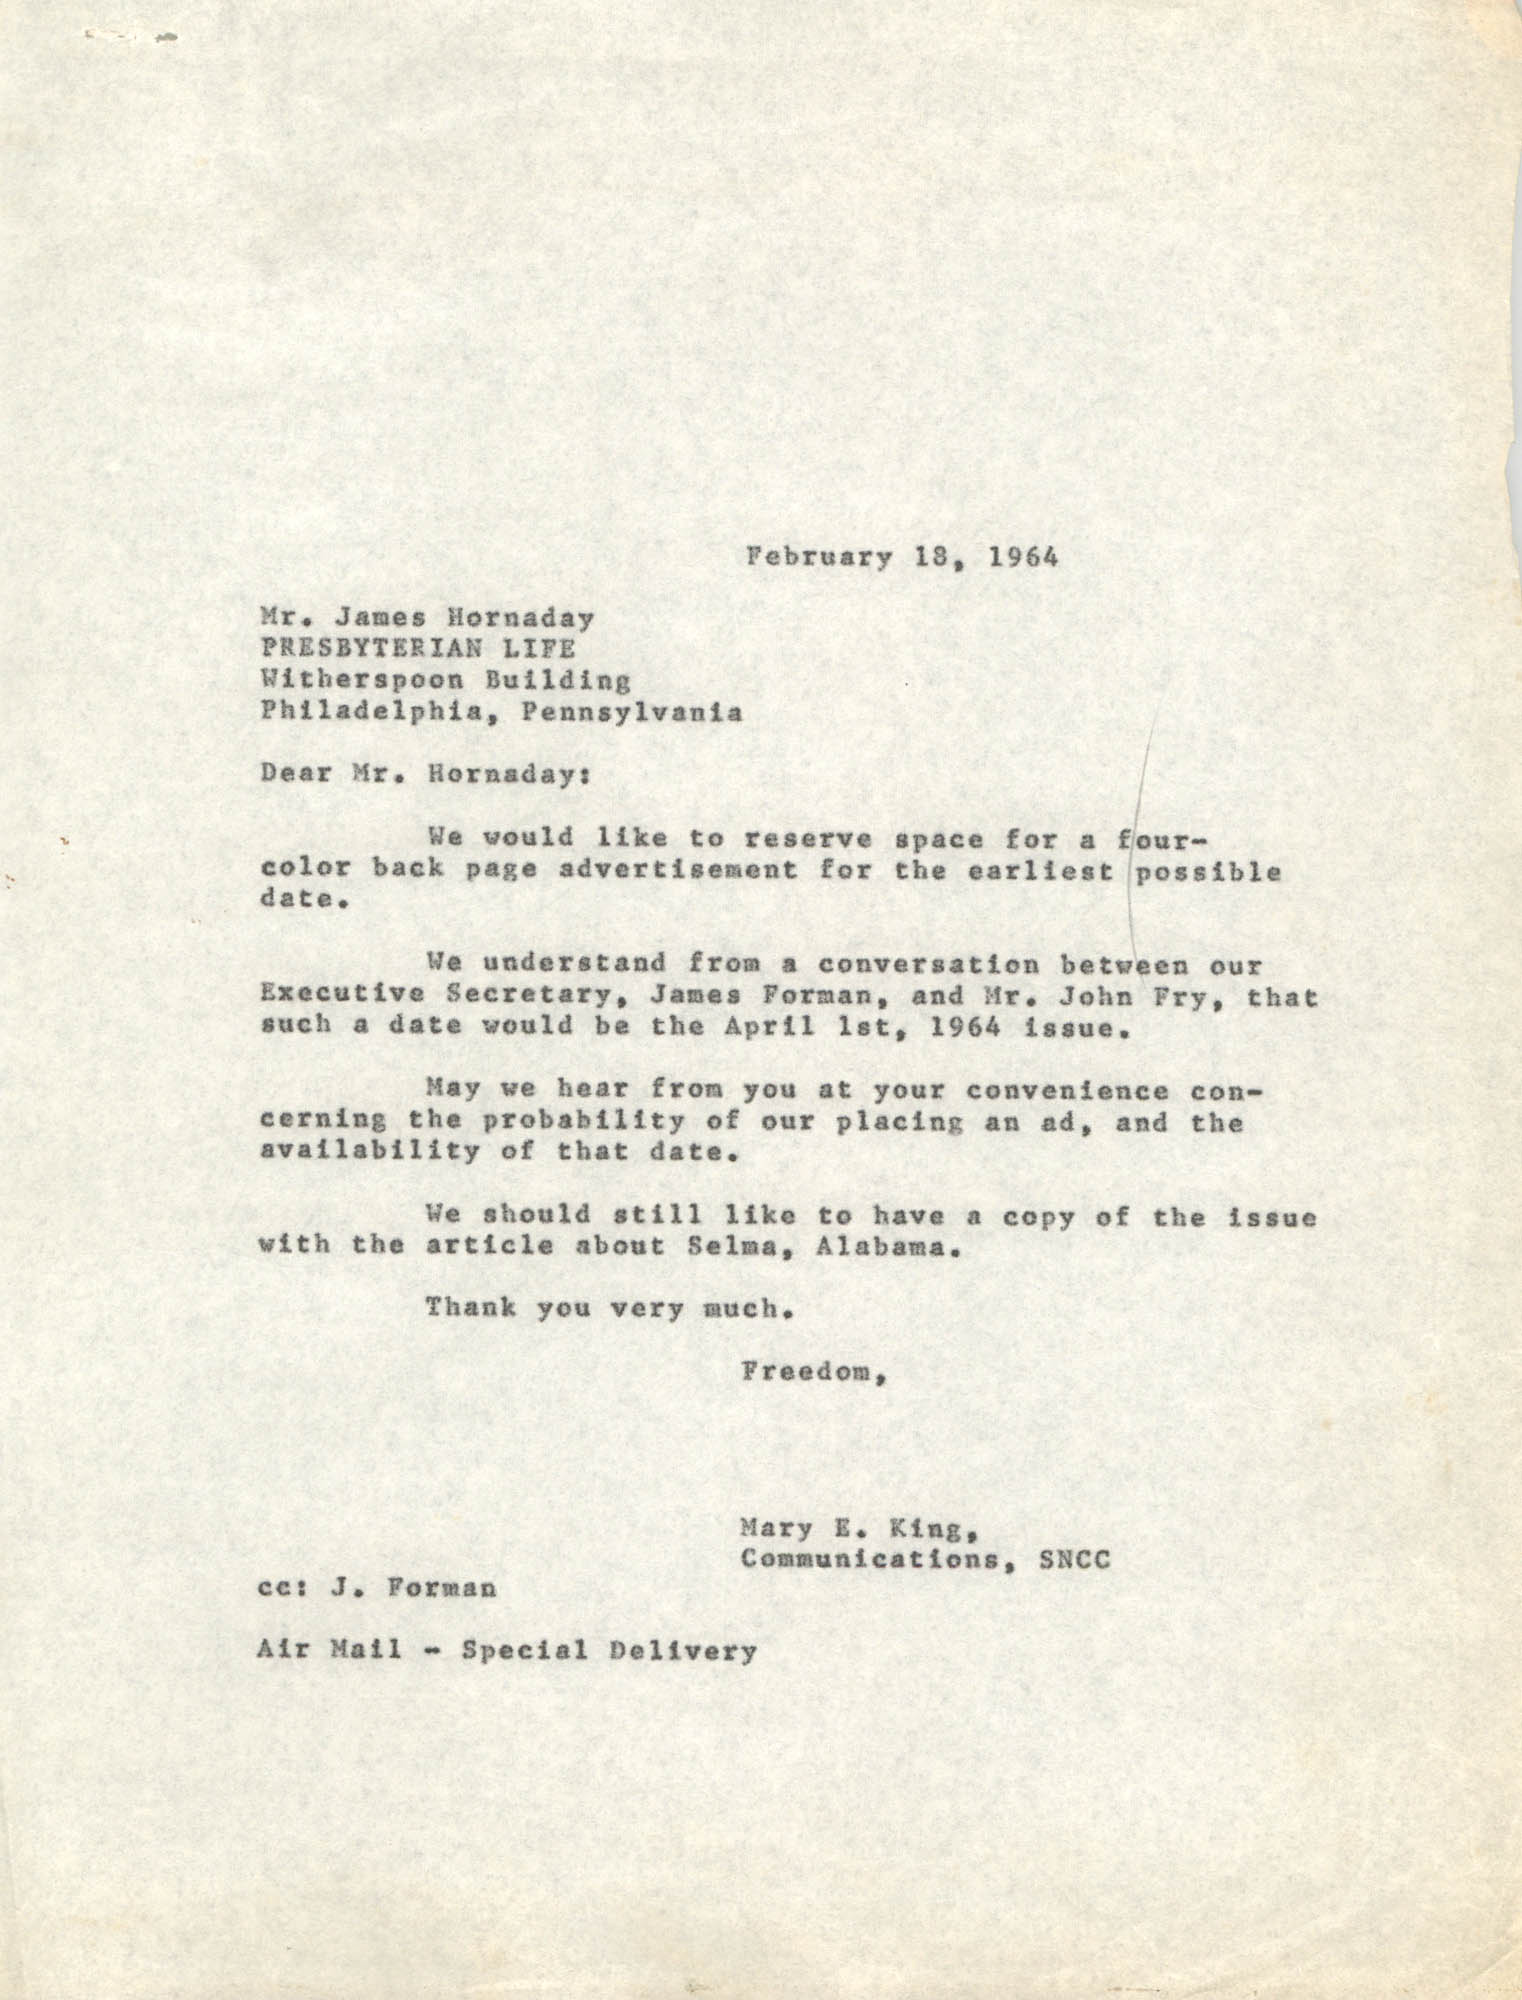 Letter from Mary E. King to James Hornaday, February 18, 1964